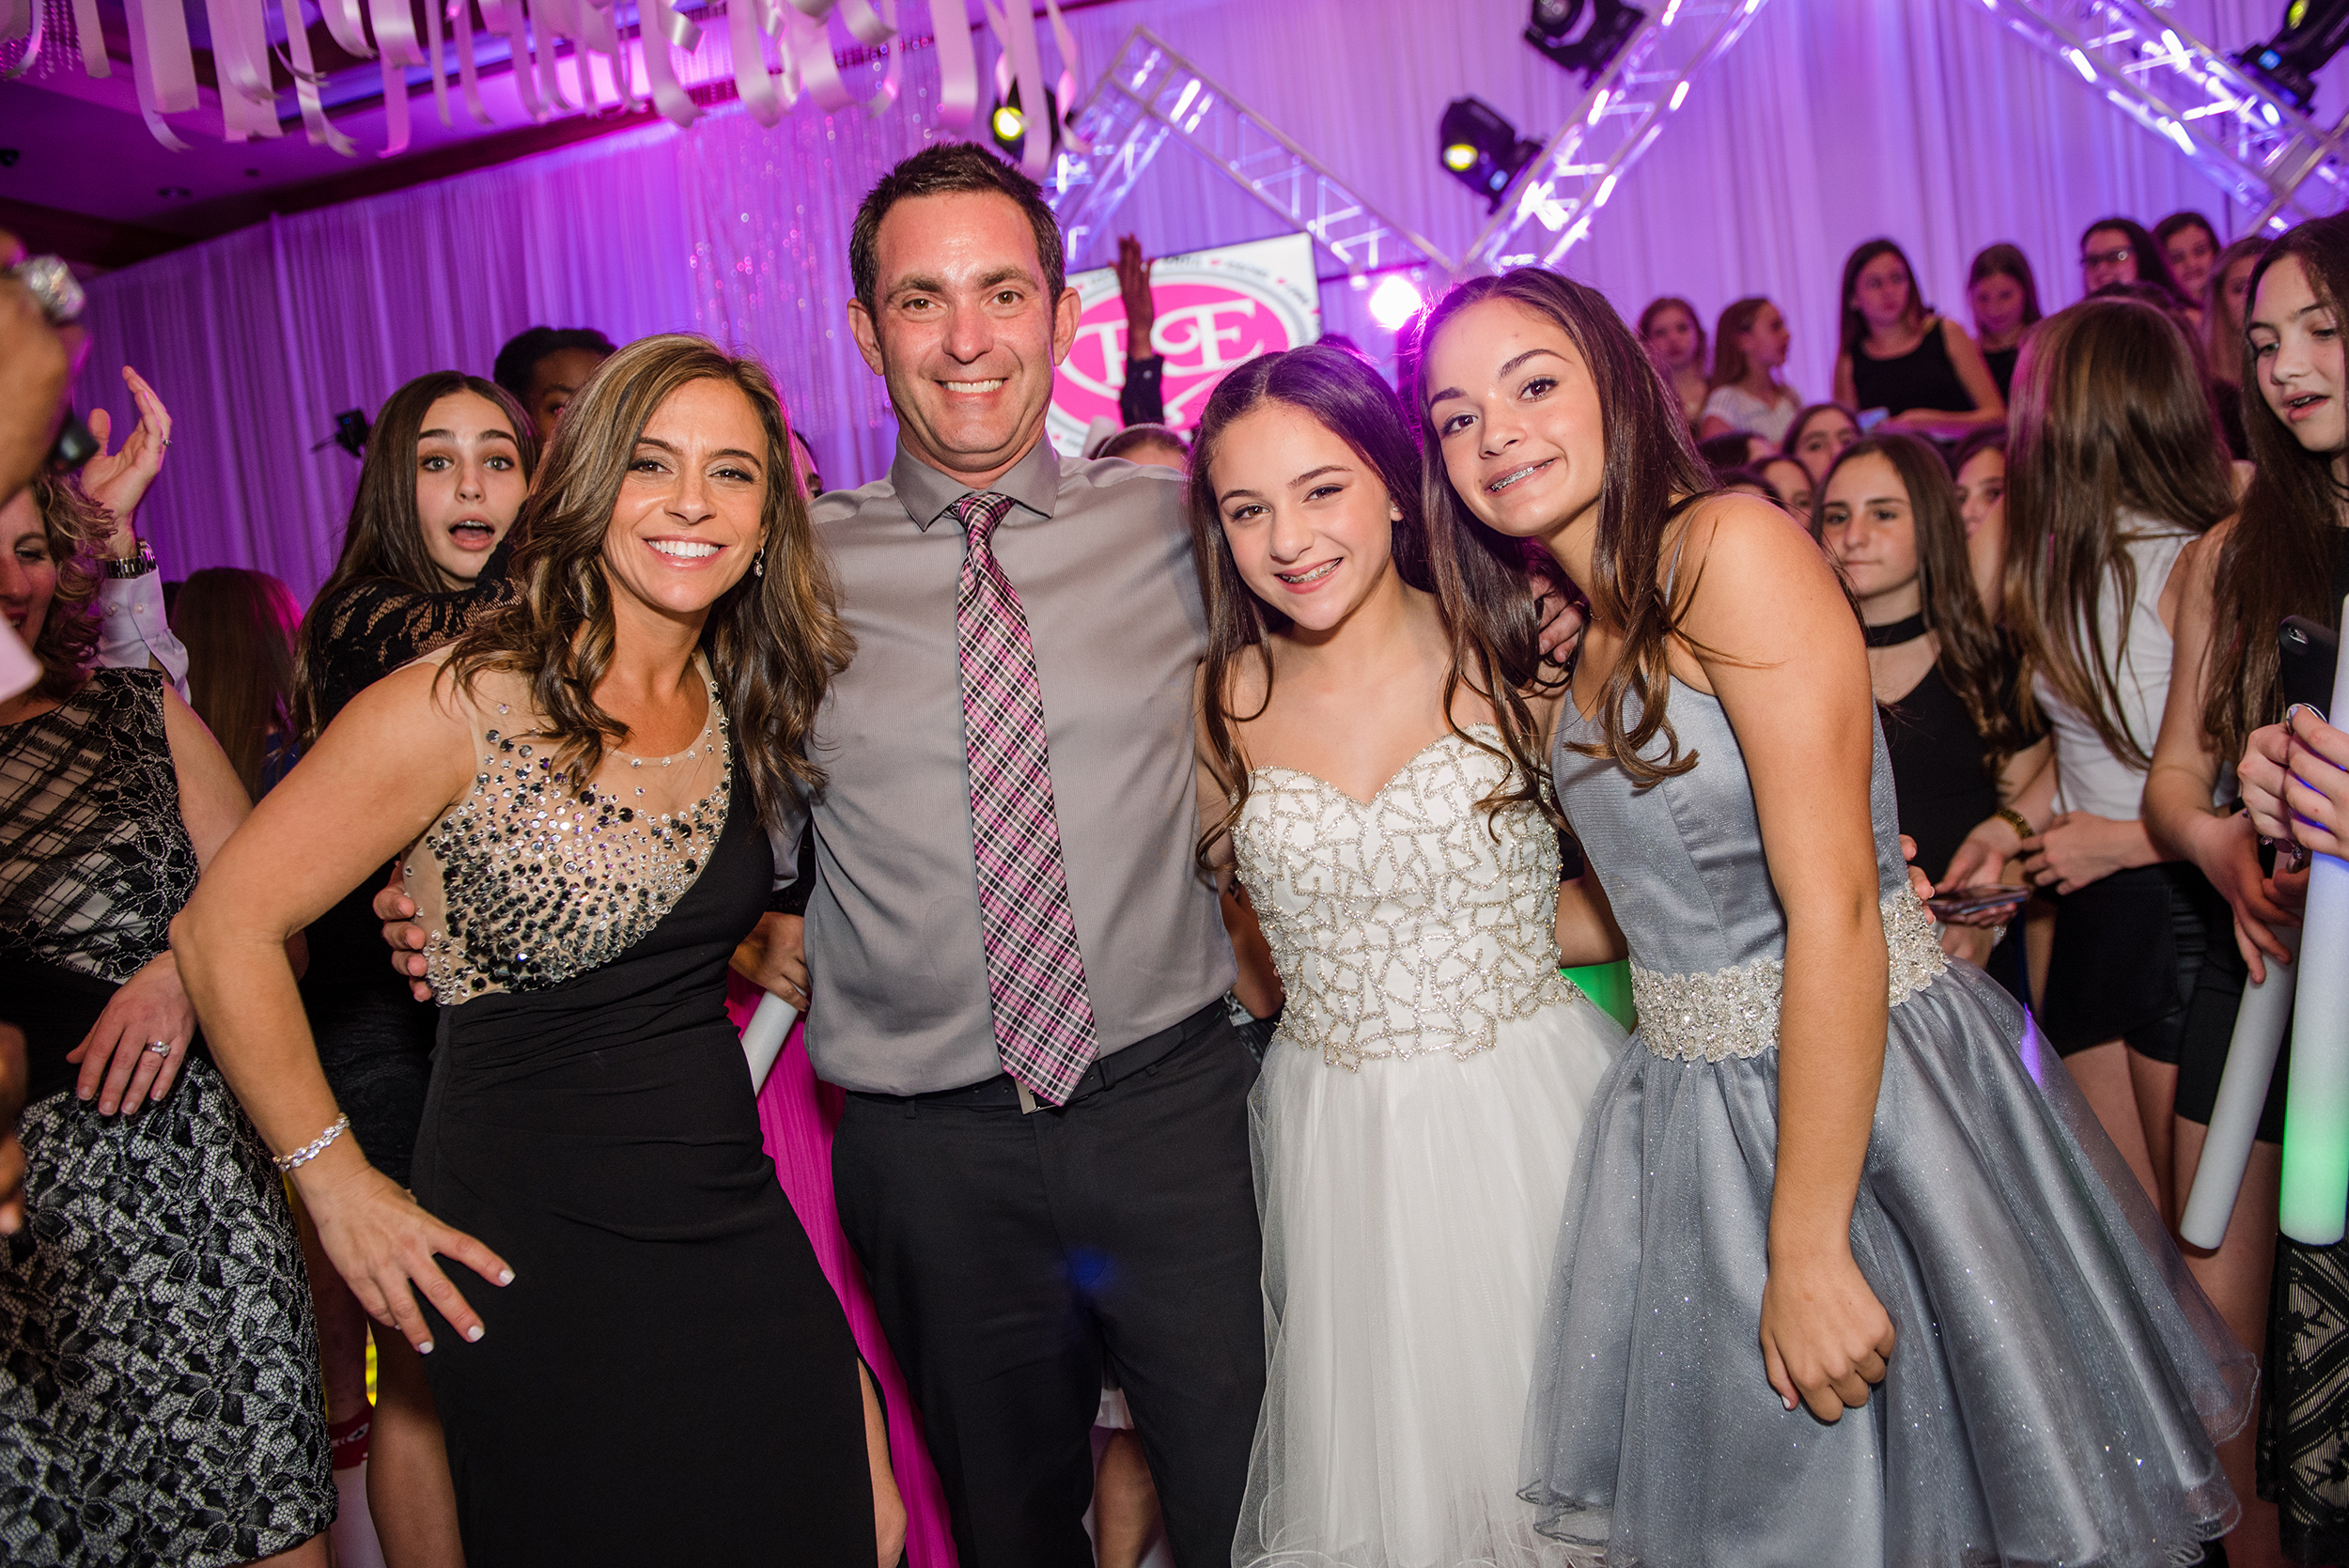 mitzvah-event-photography-south-florida-alison-frank-photography_21.jpg